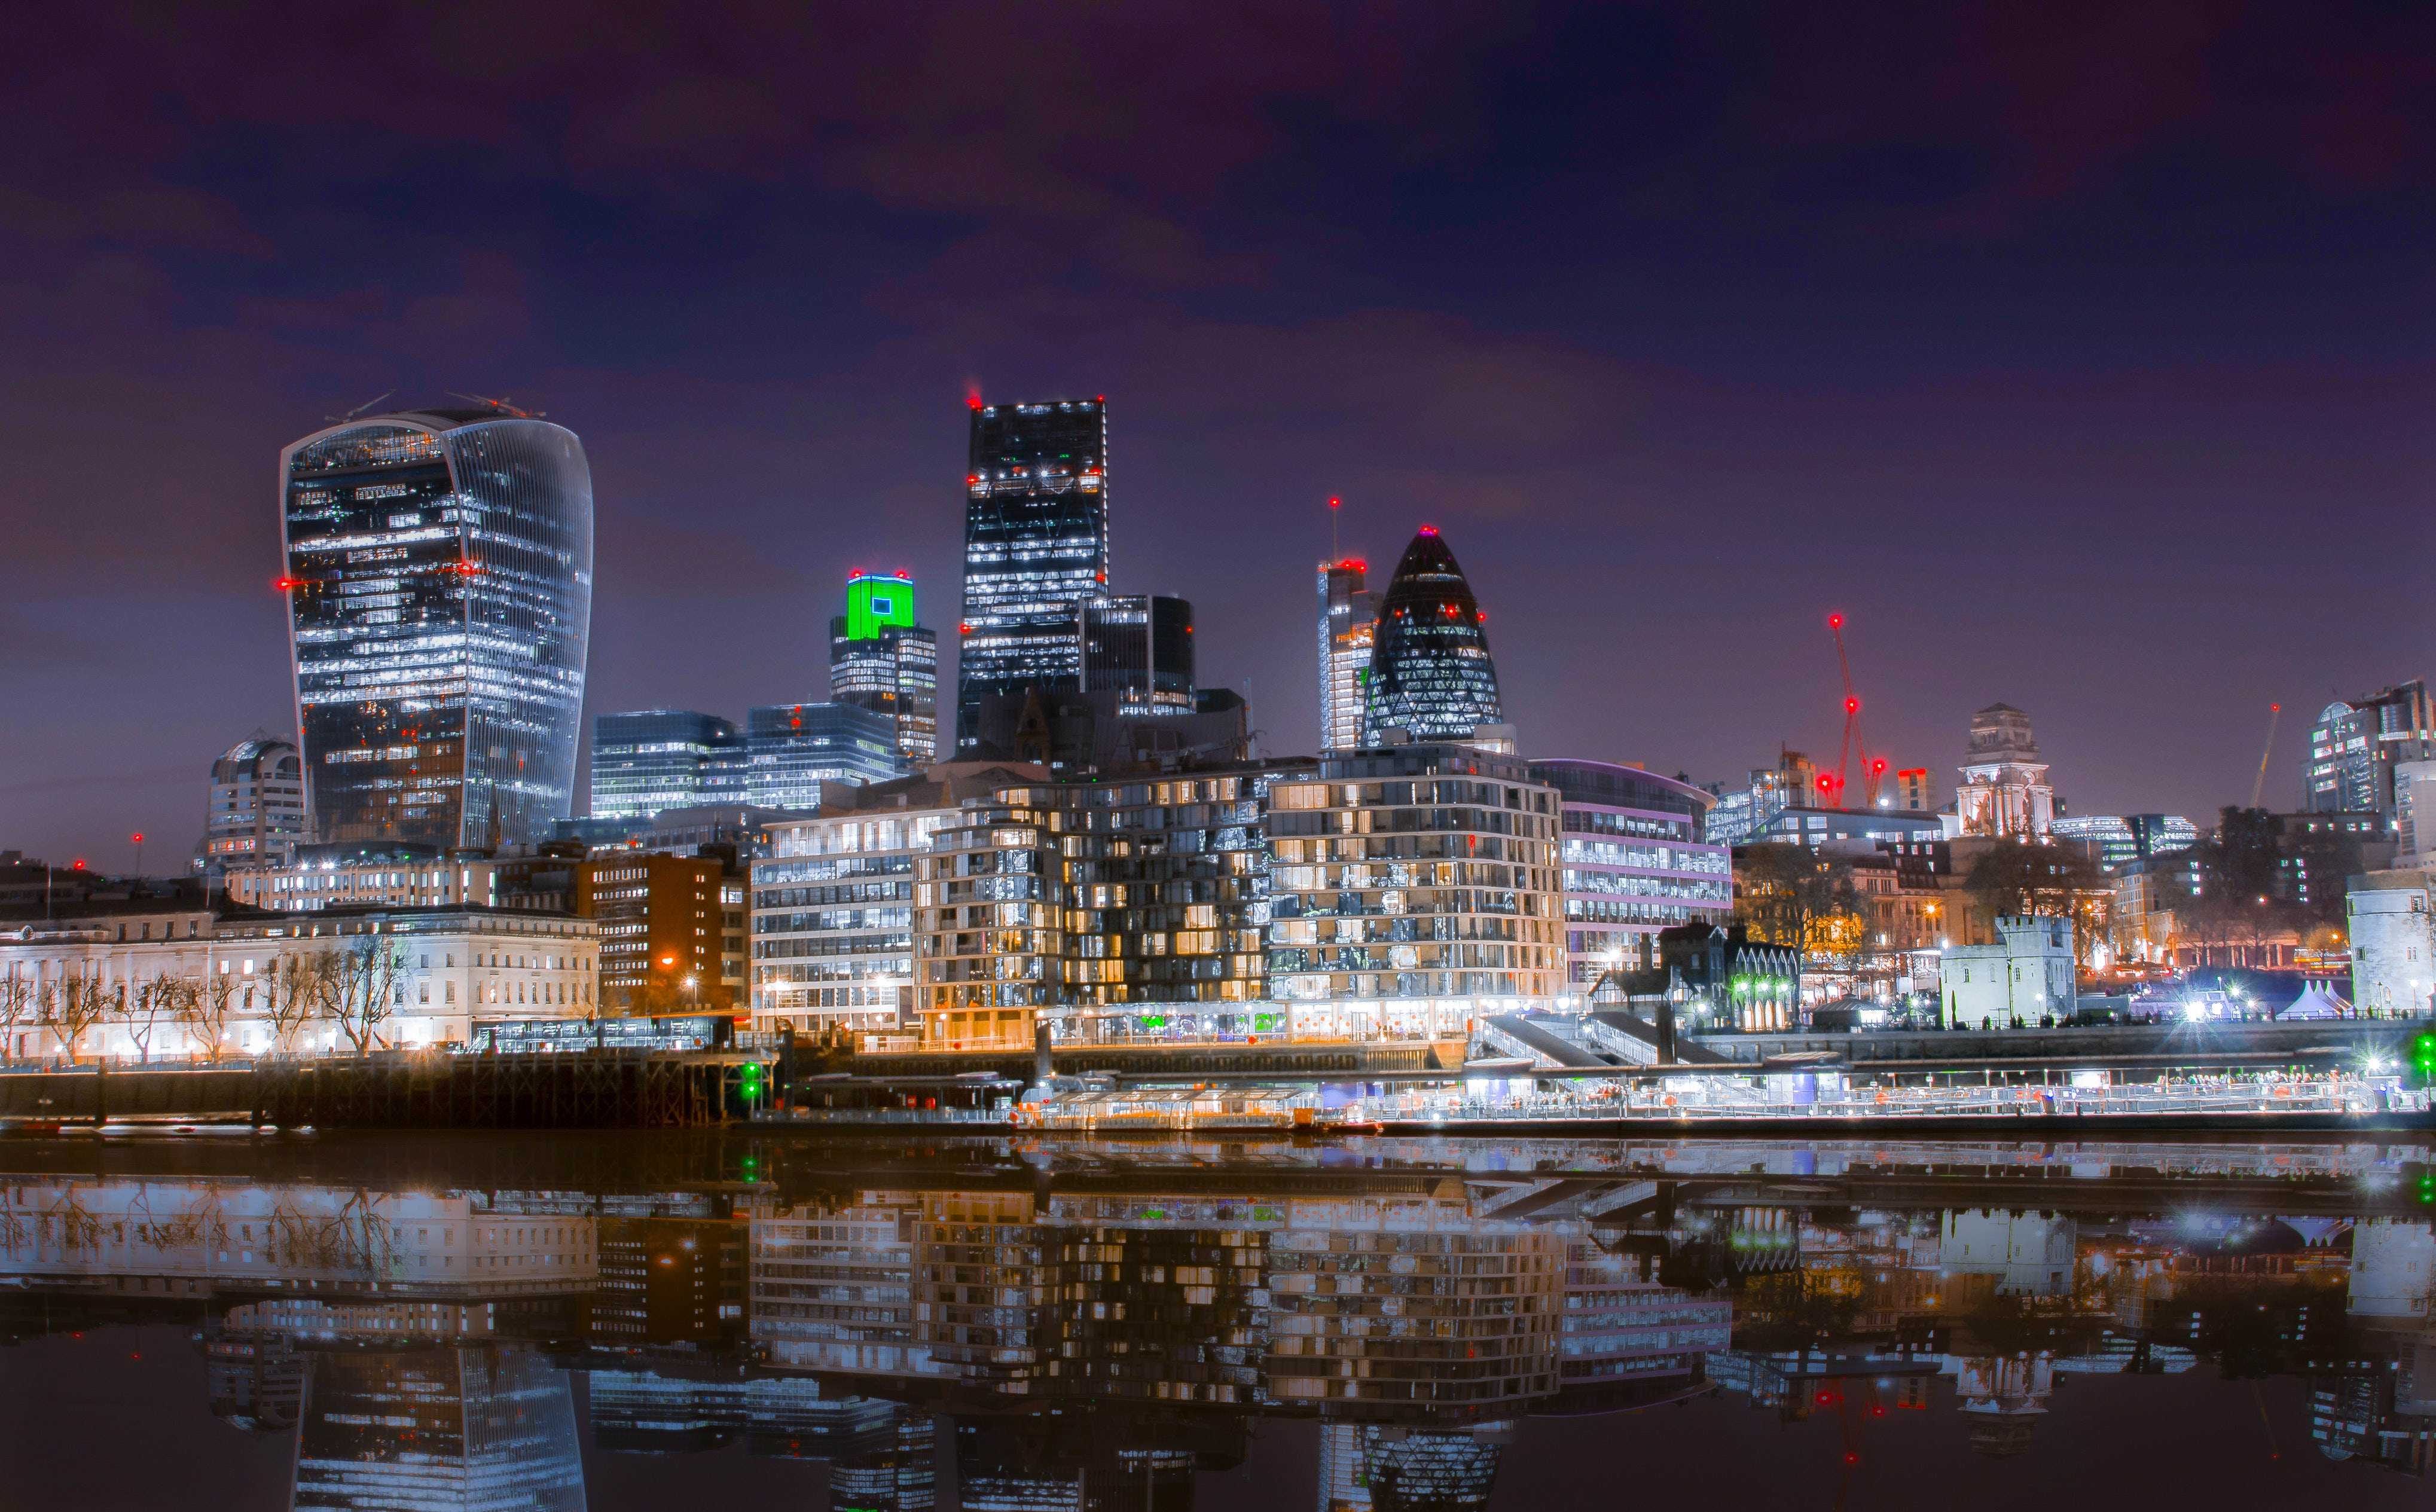 Landscape photography of city structures during night time